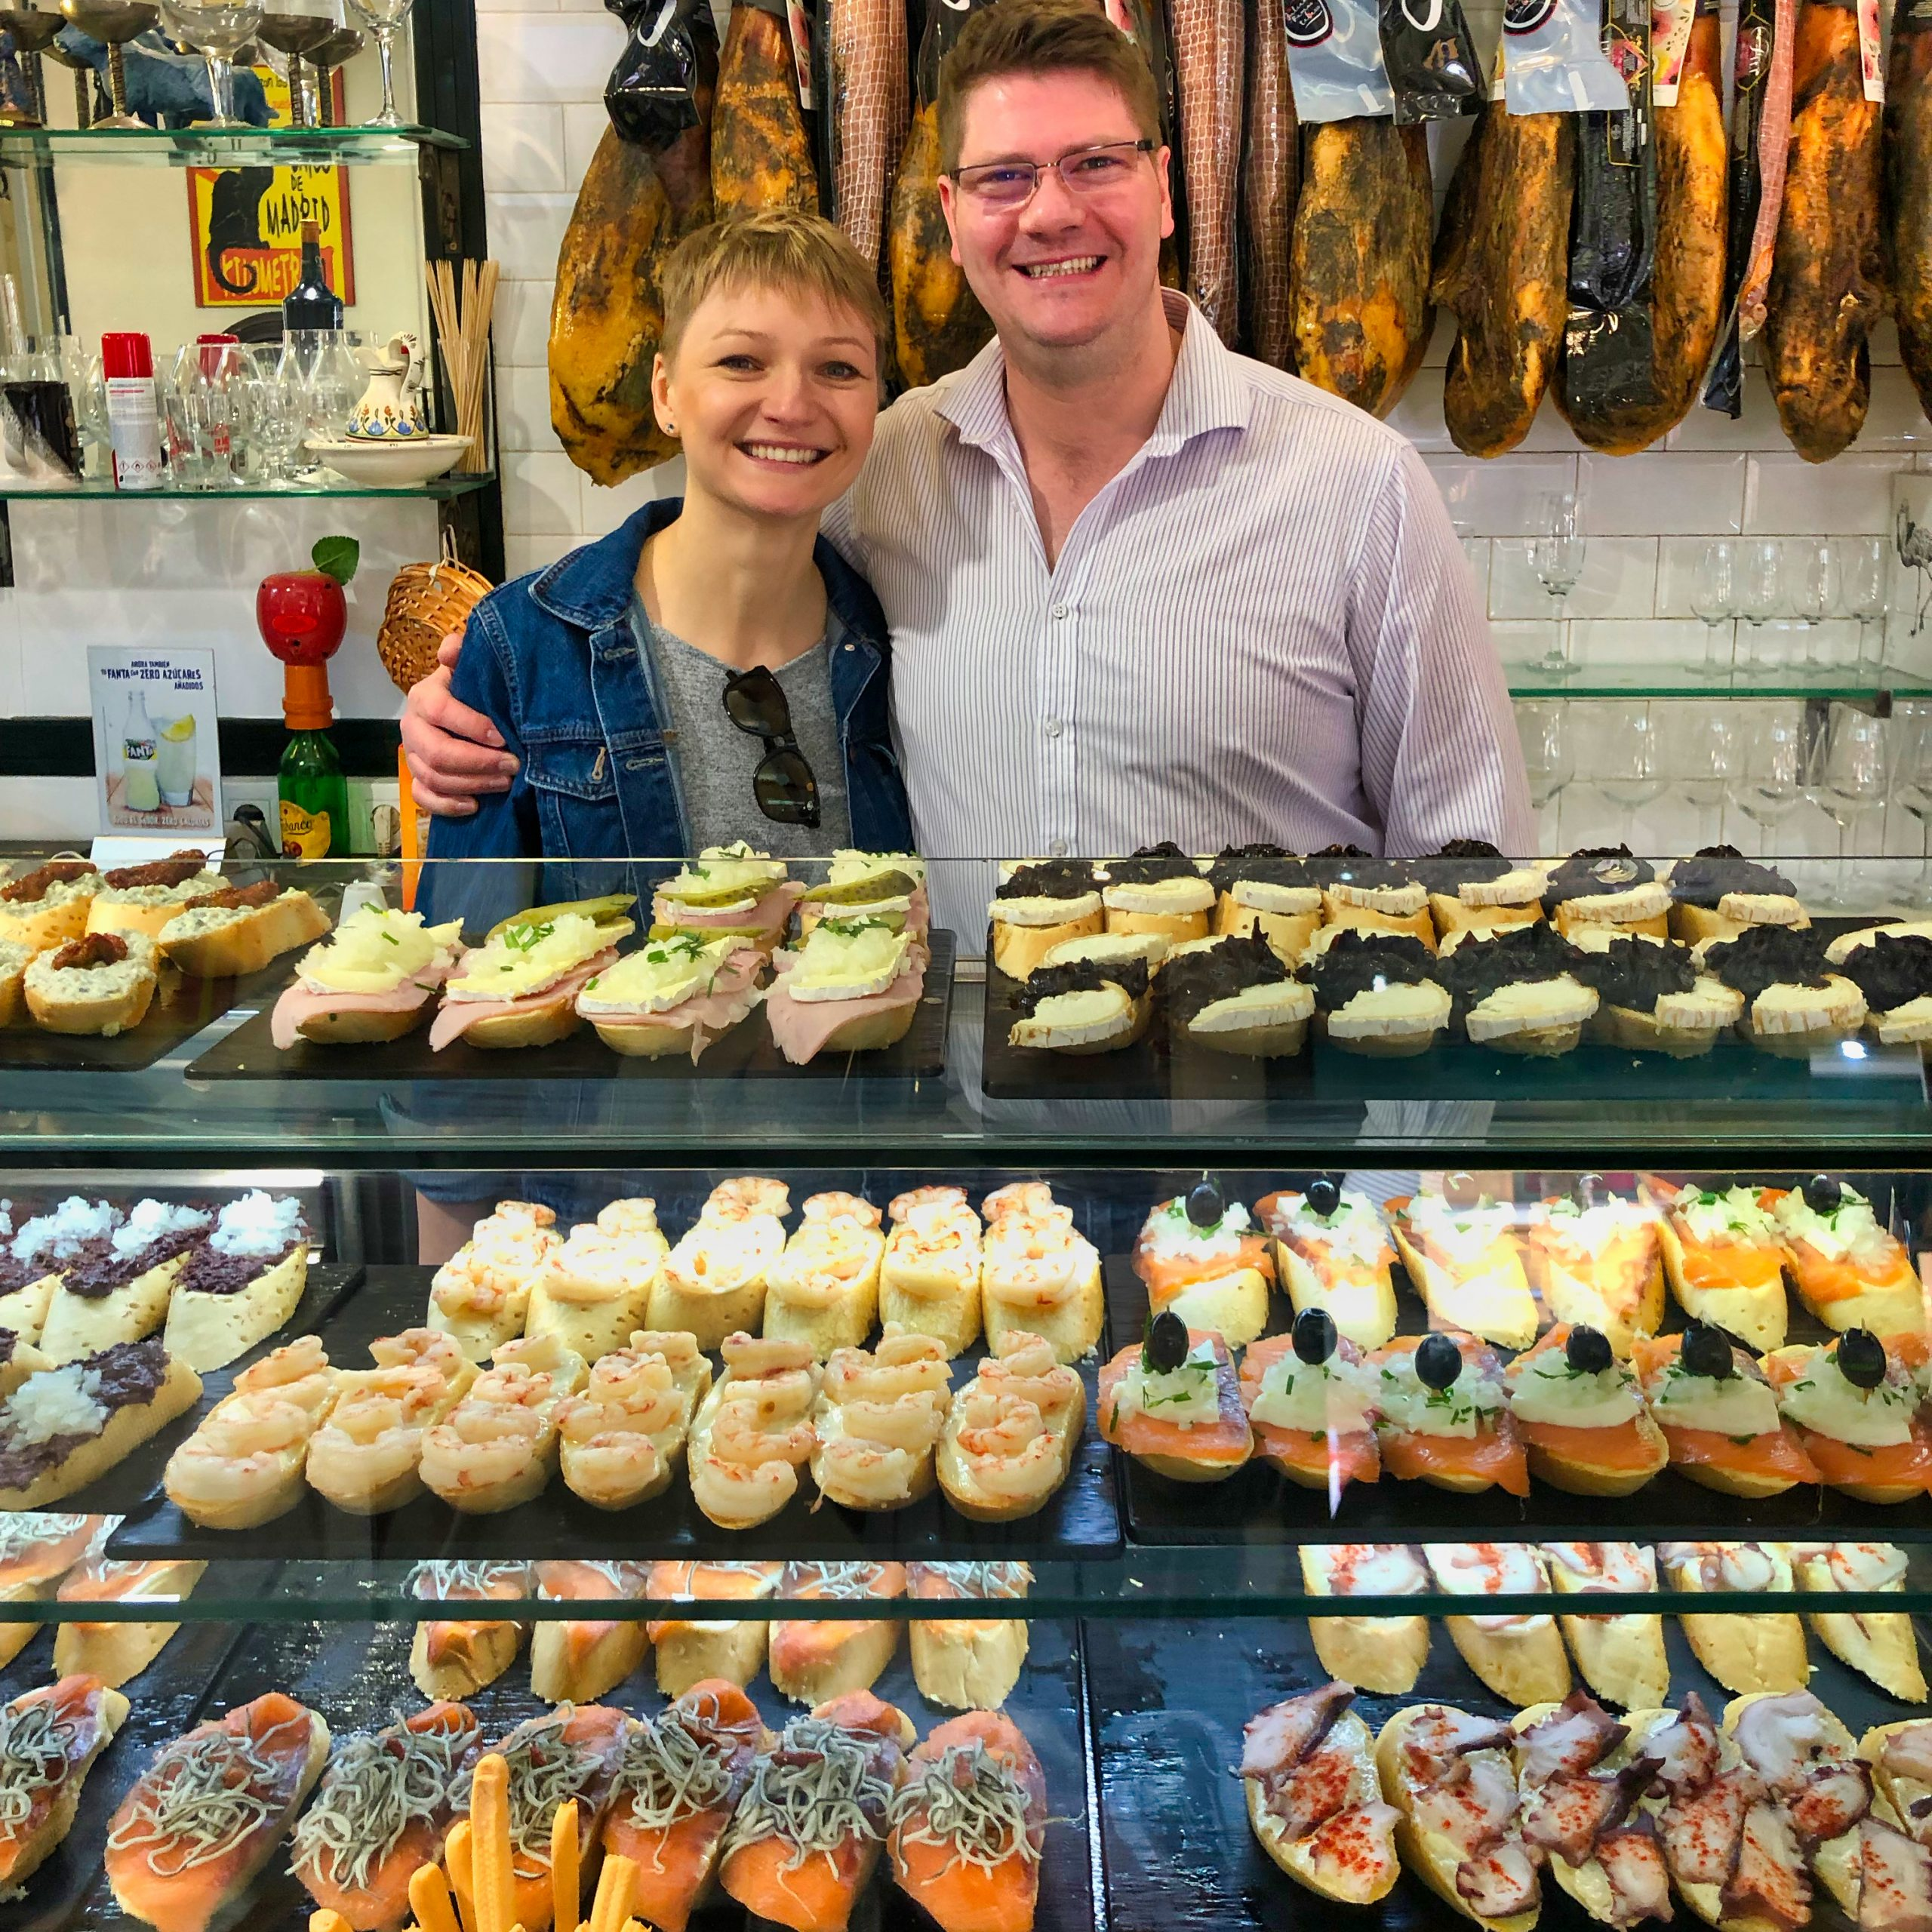 Tapas in Malaga during our food tour